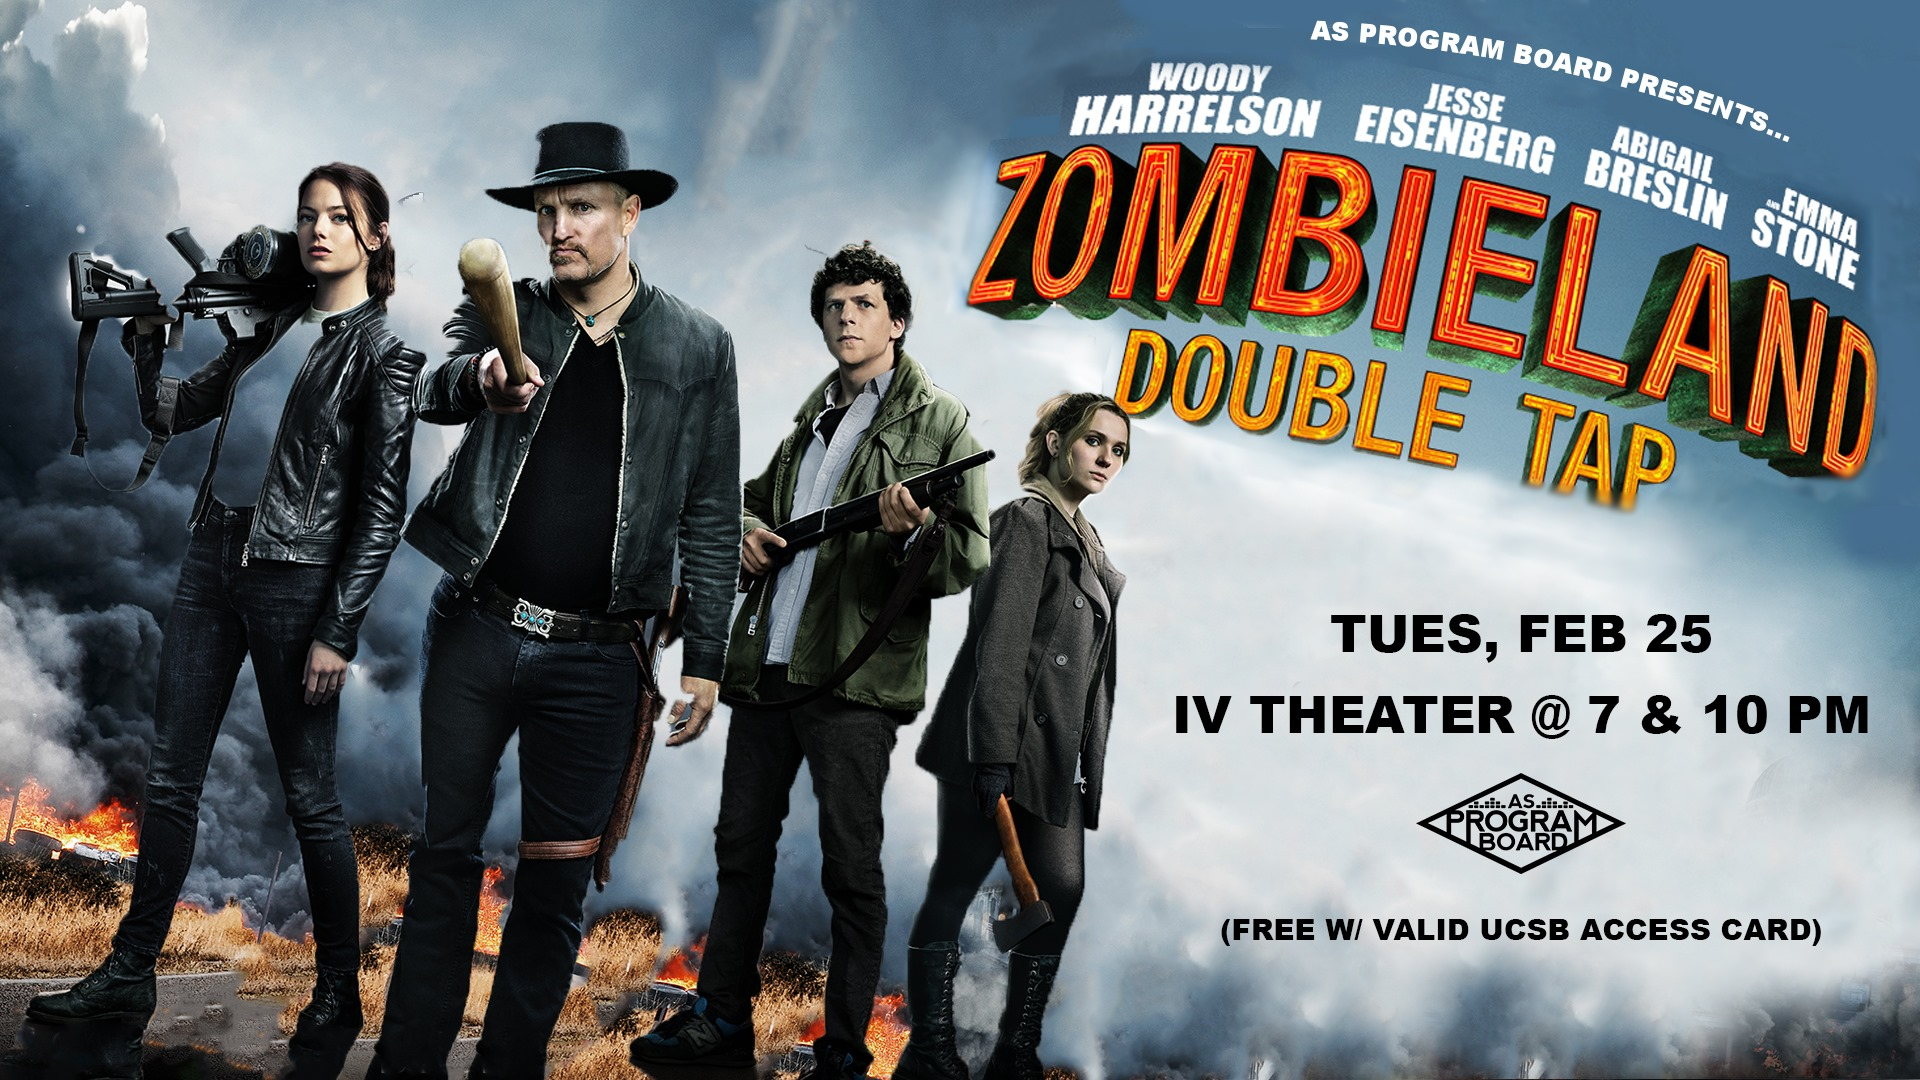 Free Tuesday Film: Zombieland Double Tap